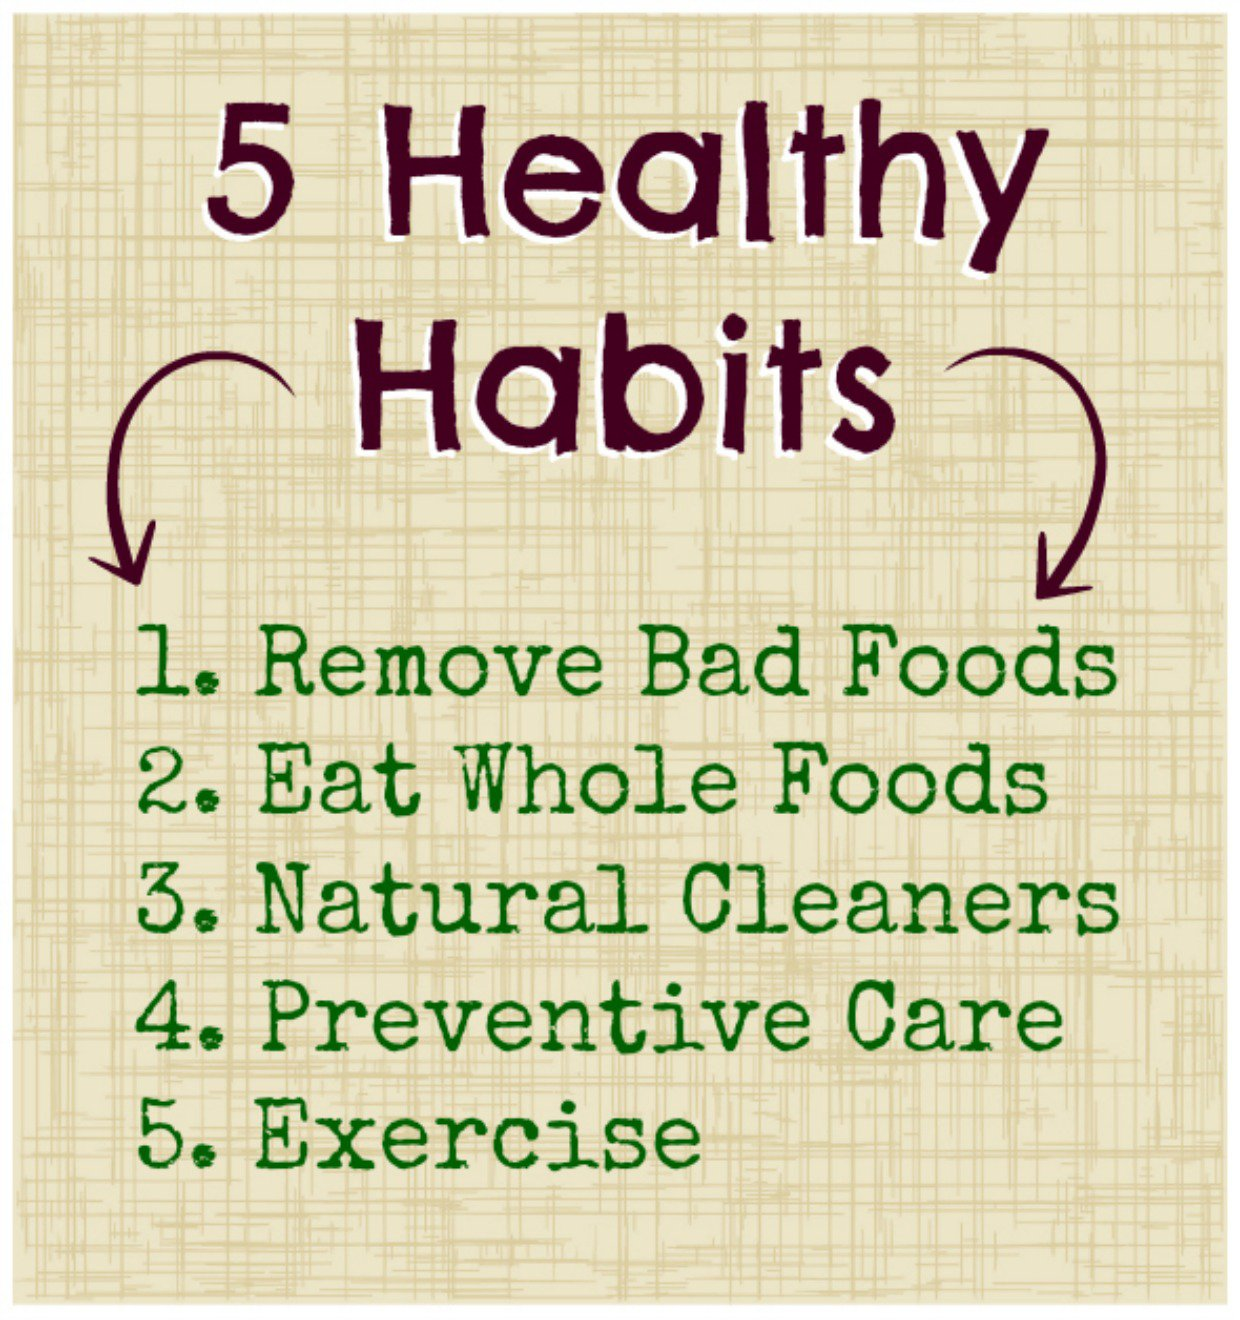 Quotes About Good Health Habits  Quotes Quotes About Good Health Habits